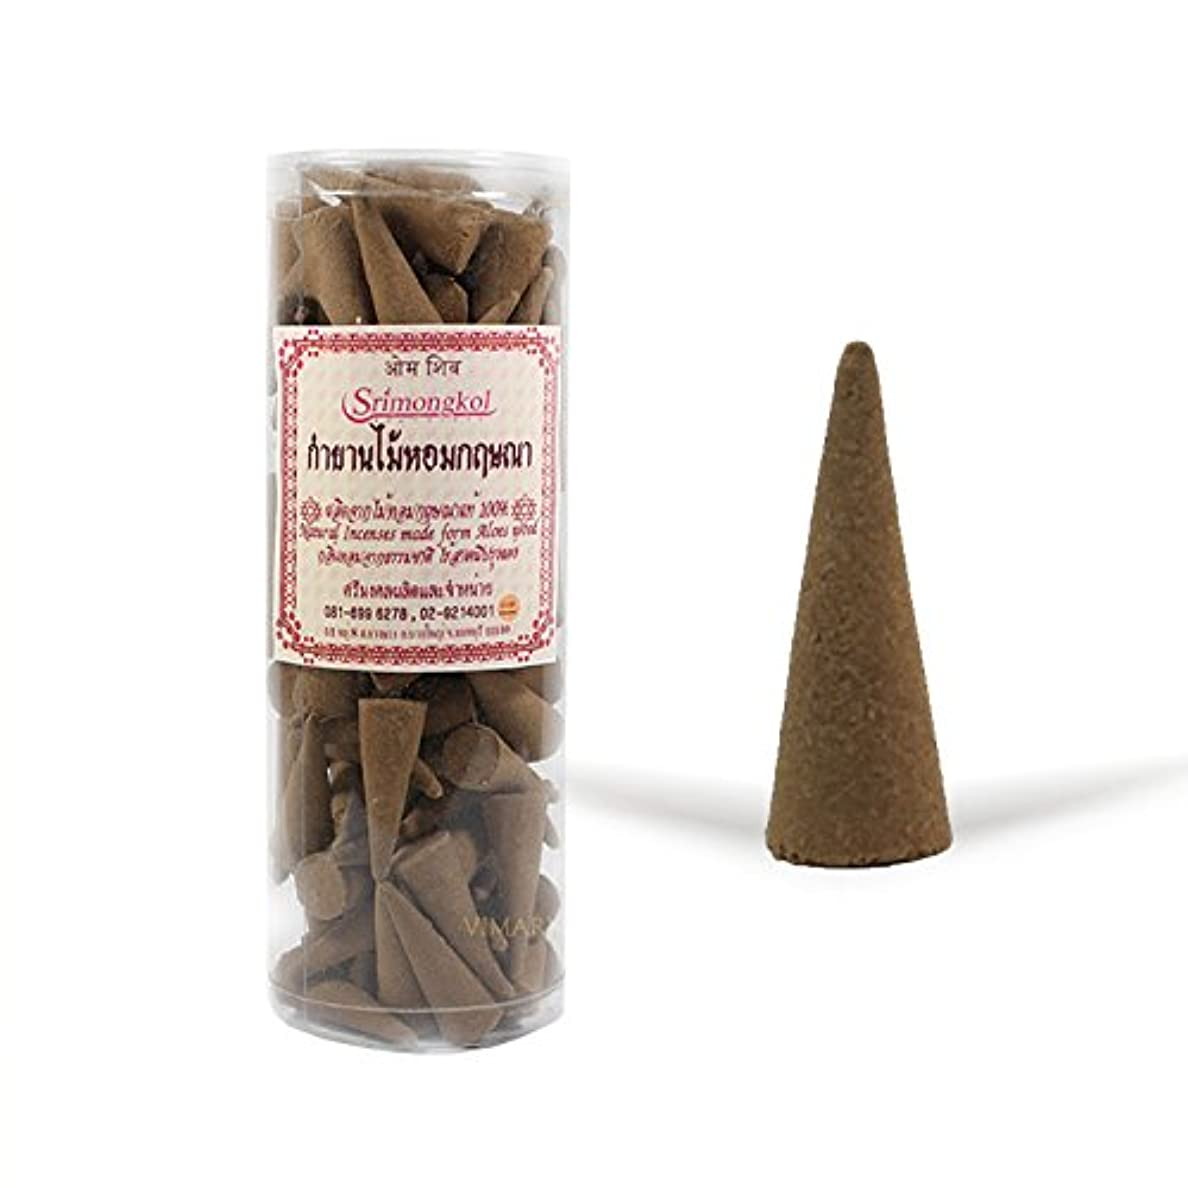 干渉伝統的銃Srimongkol Agarwood Natural Incense Cones 300 Grams (No Chemical):::Srimongkol Agarwoodナチュラル香コーン300グラム(化学薬品なし)